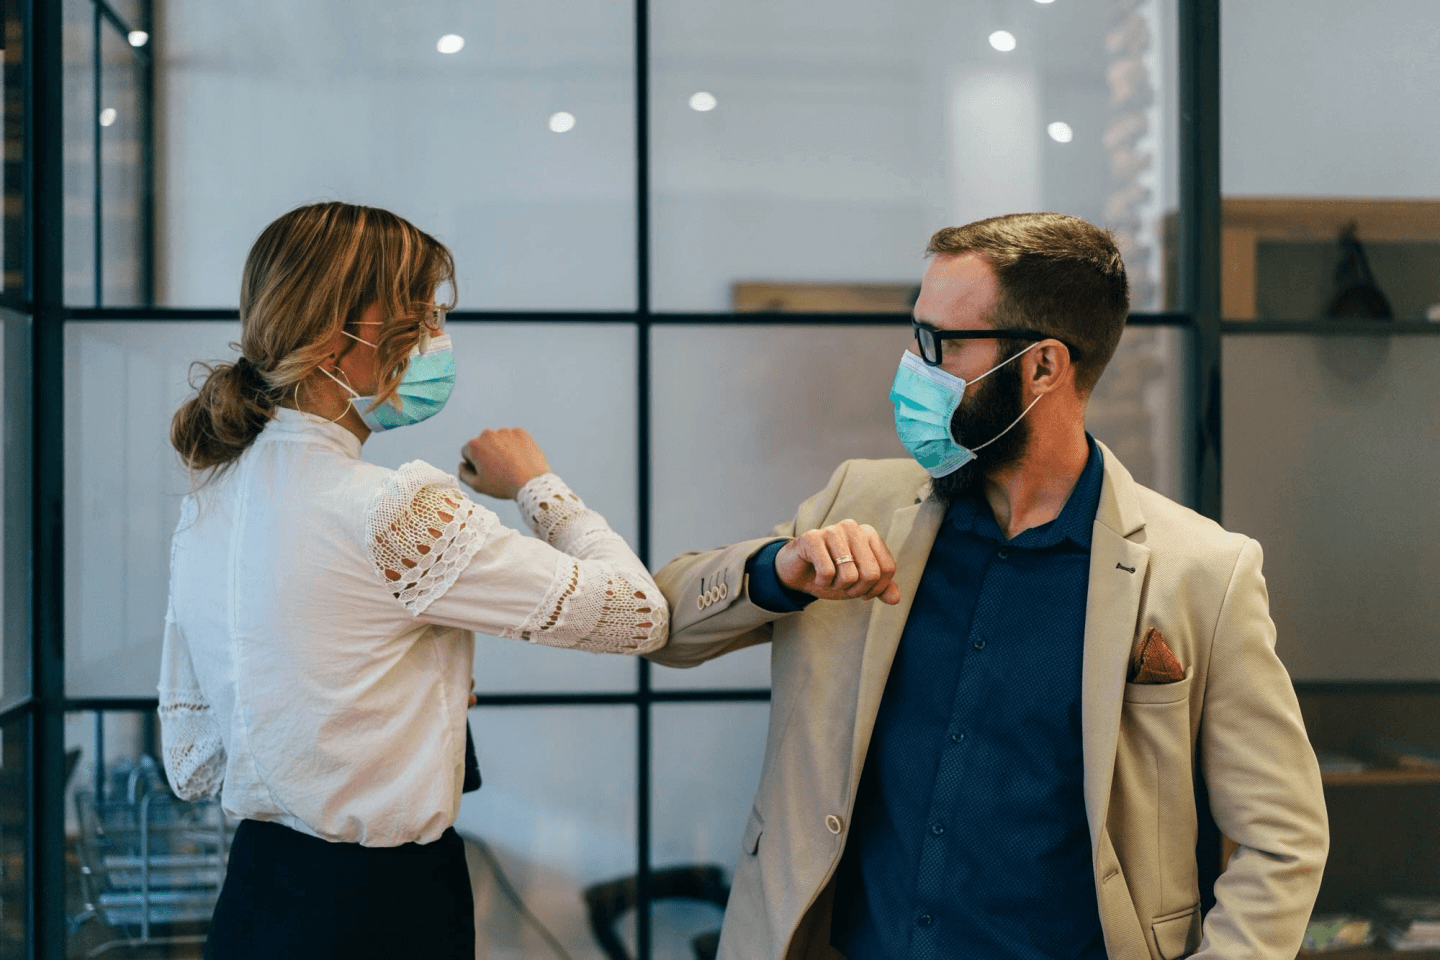 Two colleagues elbow bump, whilst wearing face masks